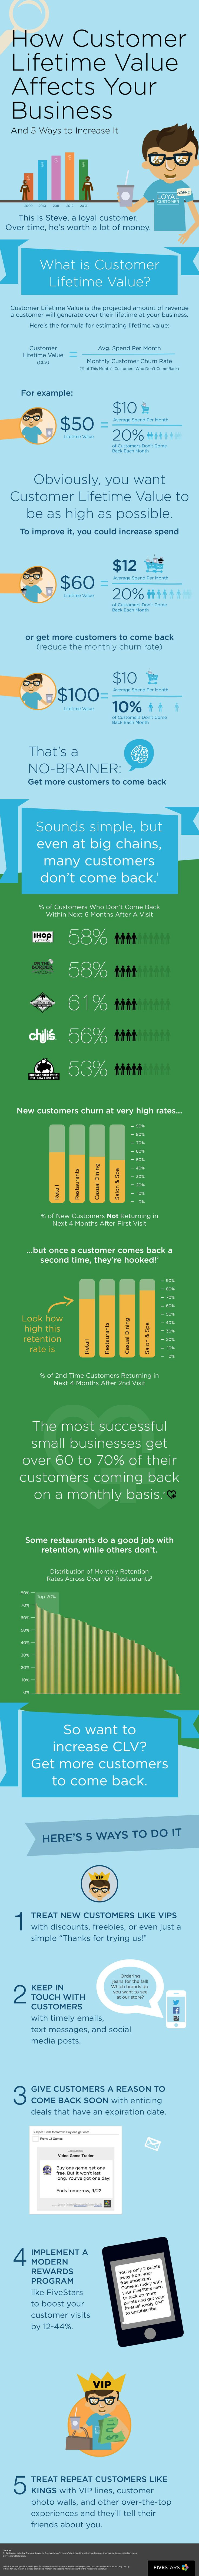 How Customer Lifetime Value Affects Your Business and 5 Ways to Increase It #infographic #Sales